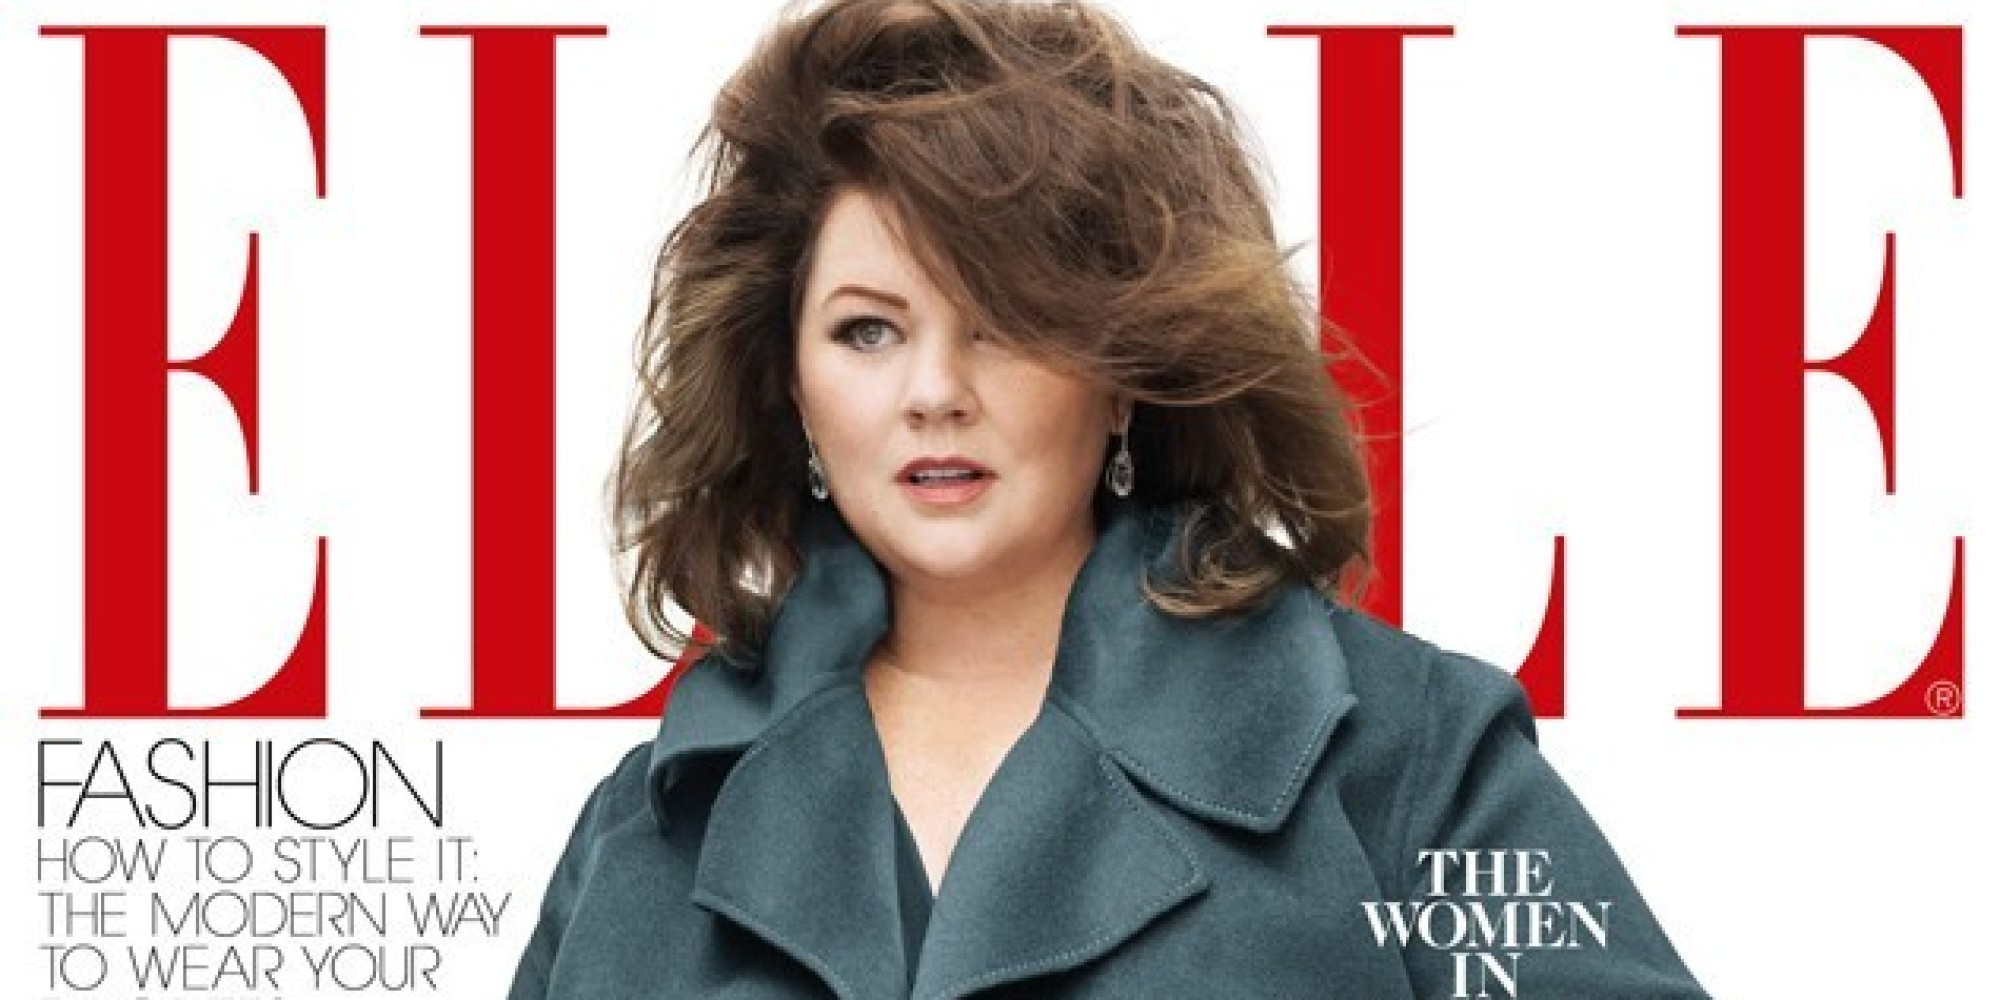 melissa mccarthy responds to  u0026 39 elle u0026 39  magazine  u0026 39 jacketgate